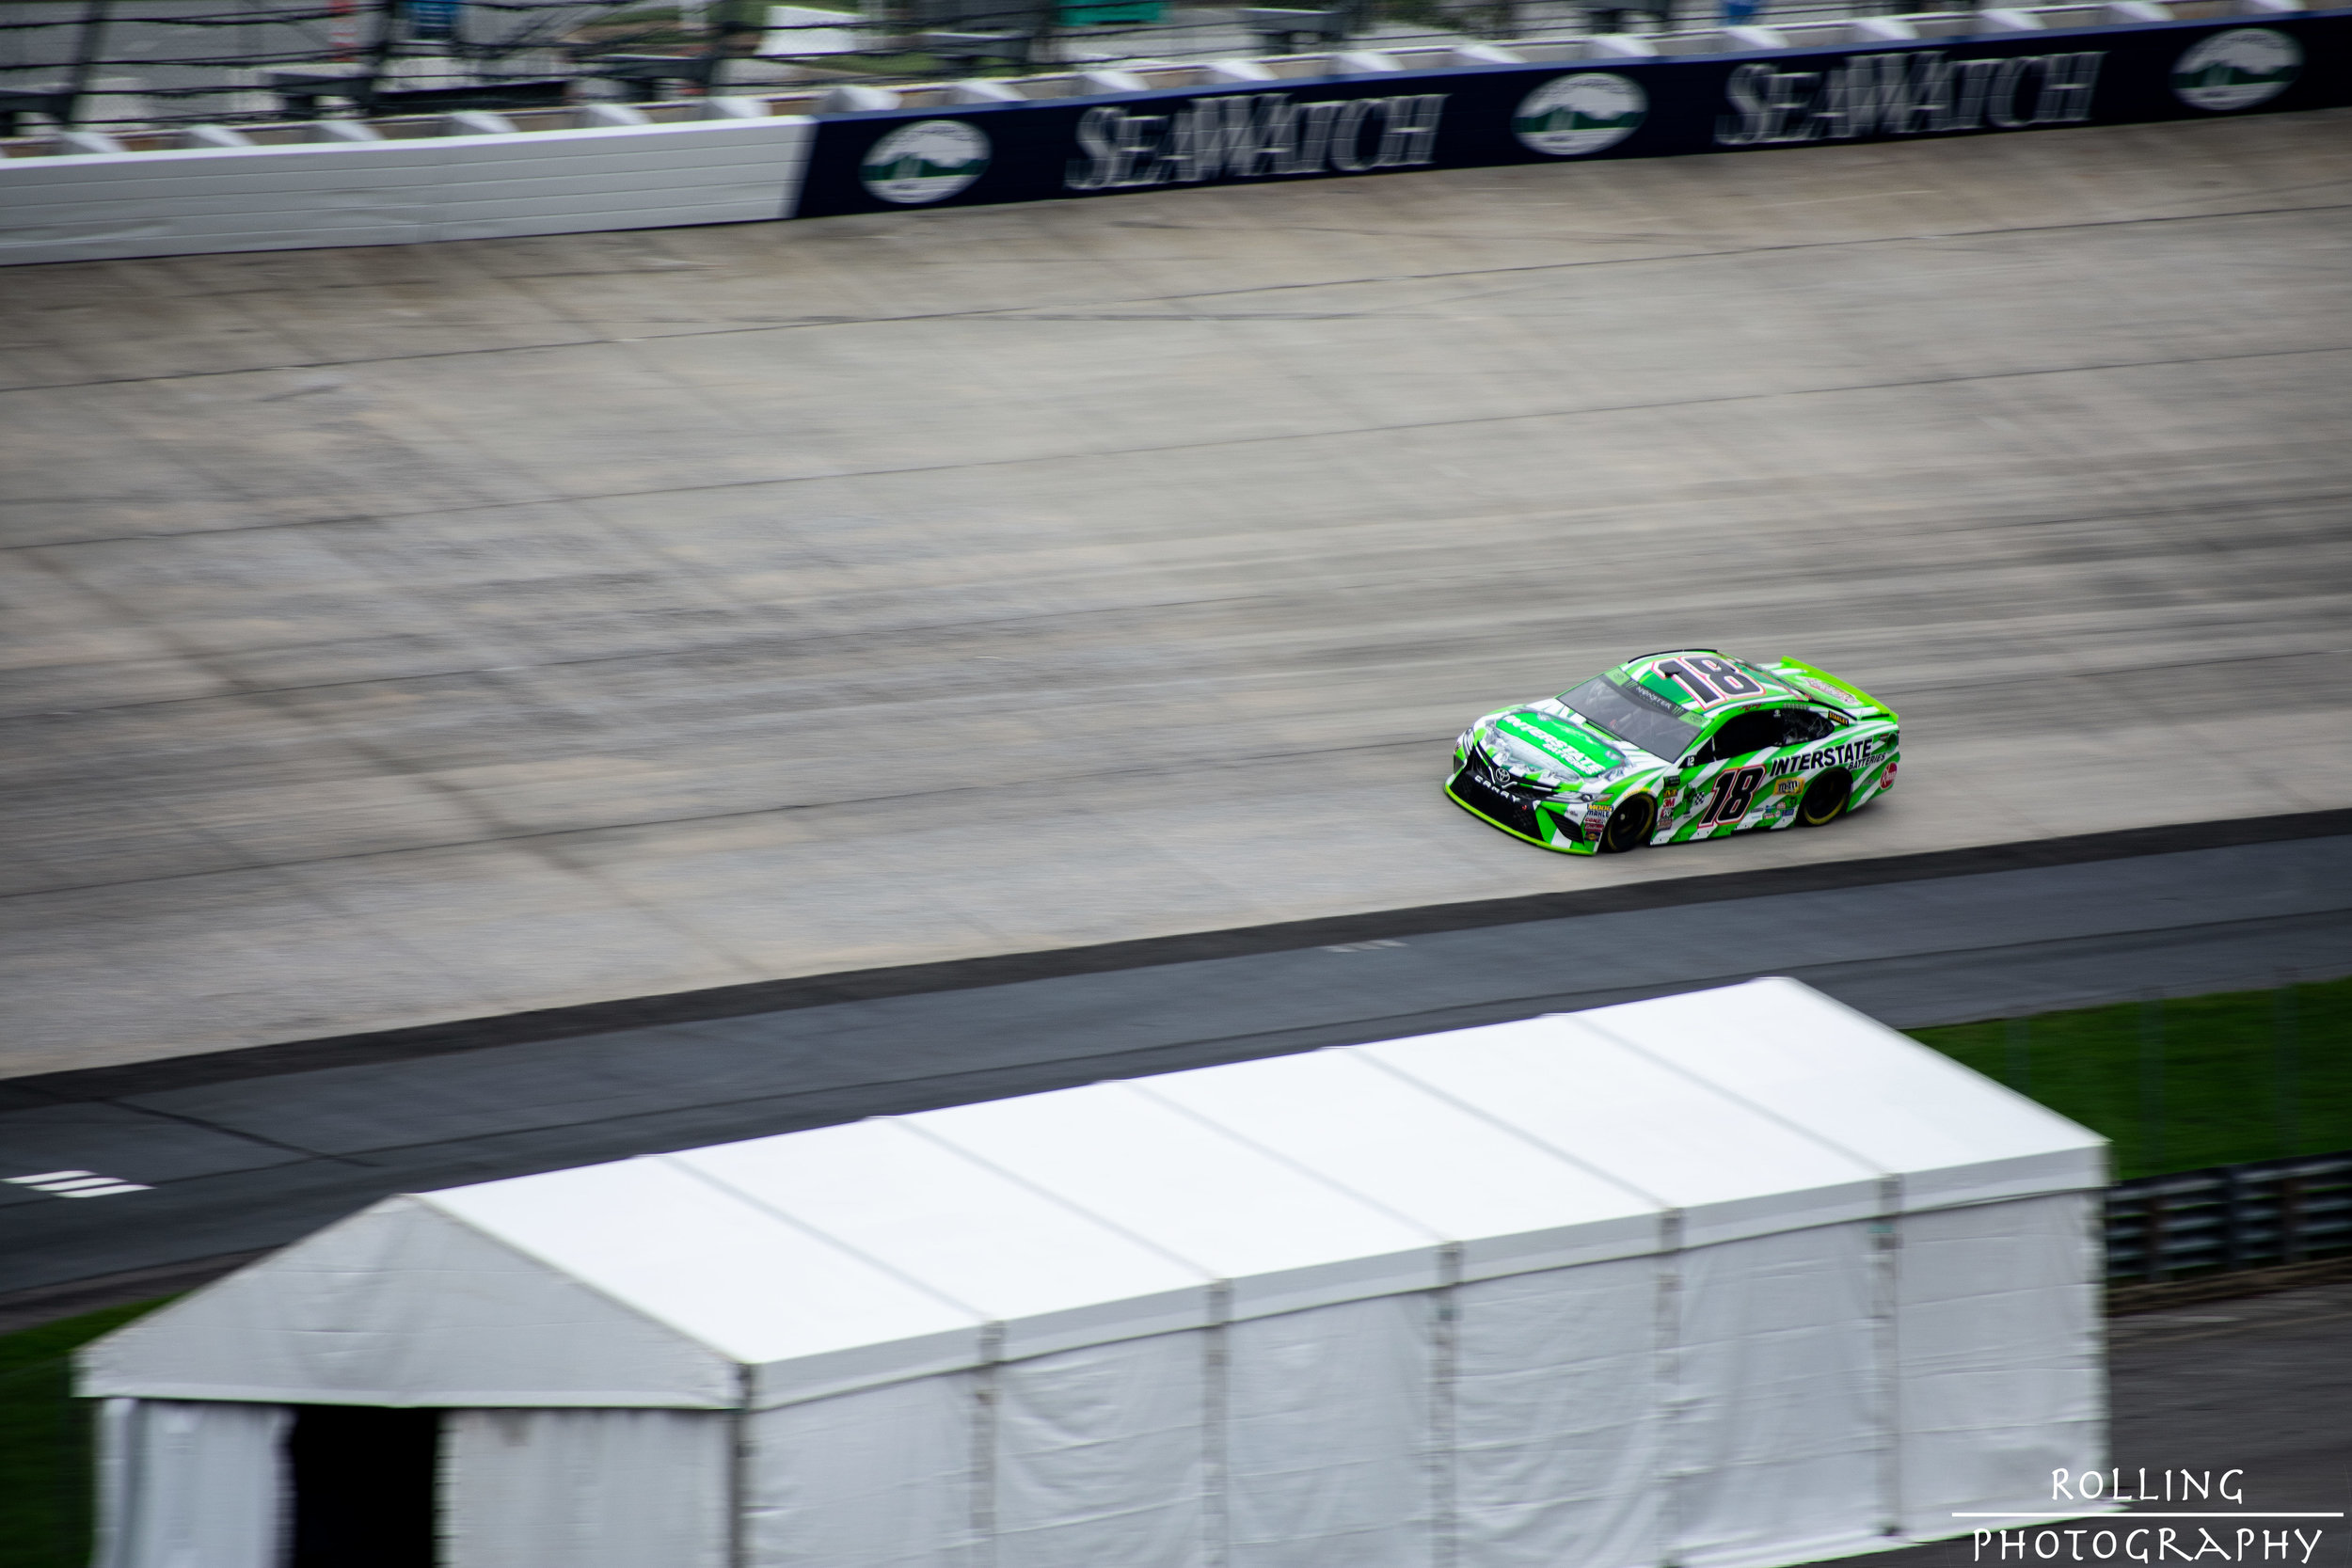 #18 Kyle Busch on Dover 3 ISO 100, 70-300mm lens (300mm), f / 6.3 Shutter Speed  1/200